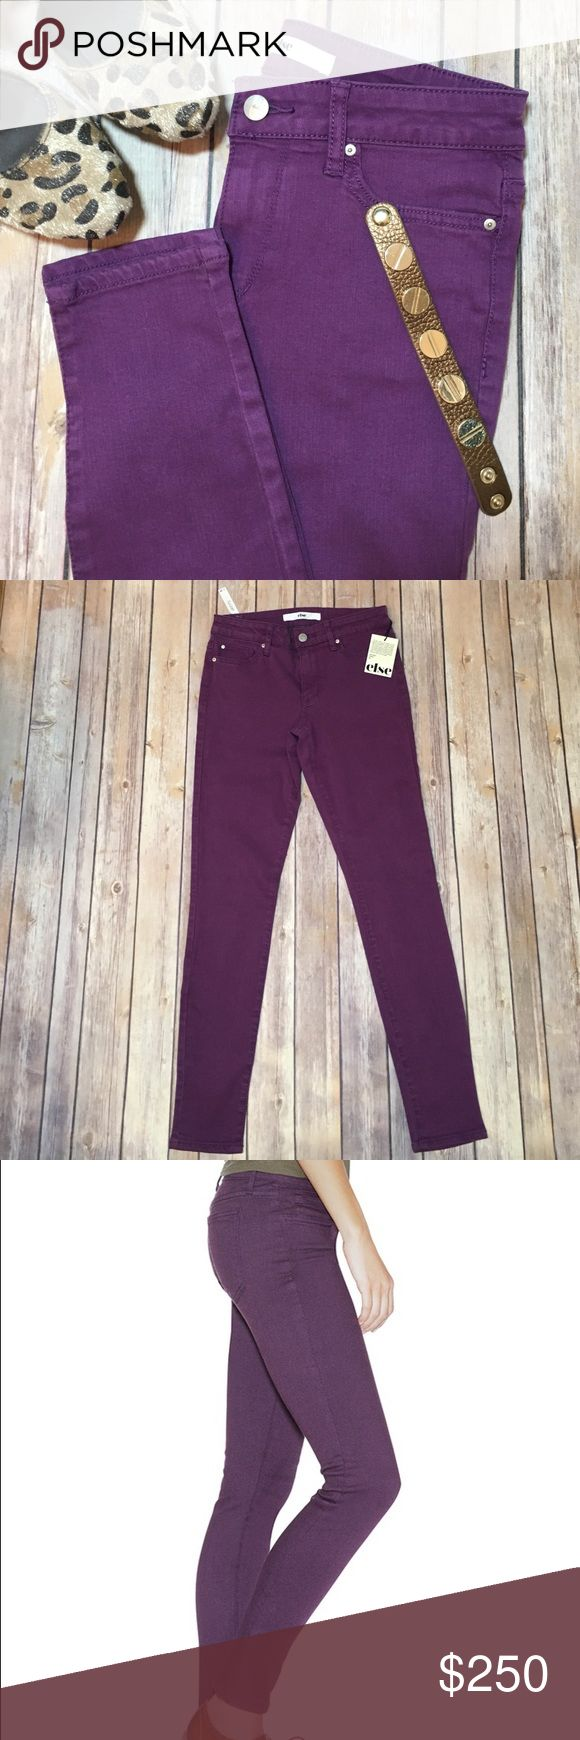 "Purple skinny jean Else NWT purple skinny jeans. Mid rise and super stretchy size 26. Approx measurements waist 27"", hips 30"", rise 9"", inseam 29"". Please use the offer button for all offers and bundle for a bigger discount. Thanks 40 Else Jeans Skinny"